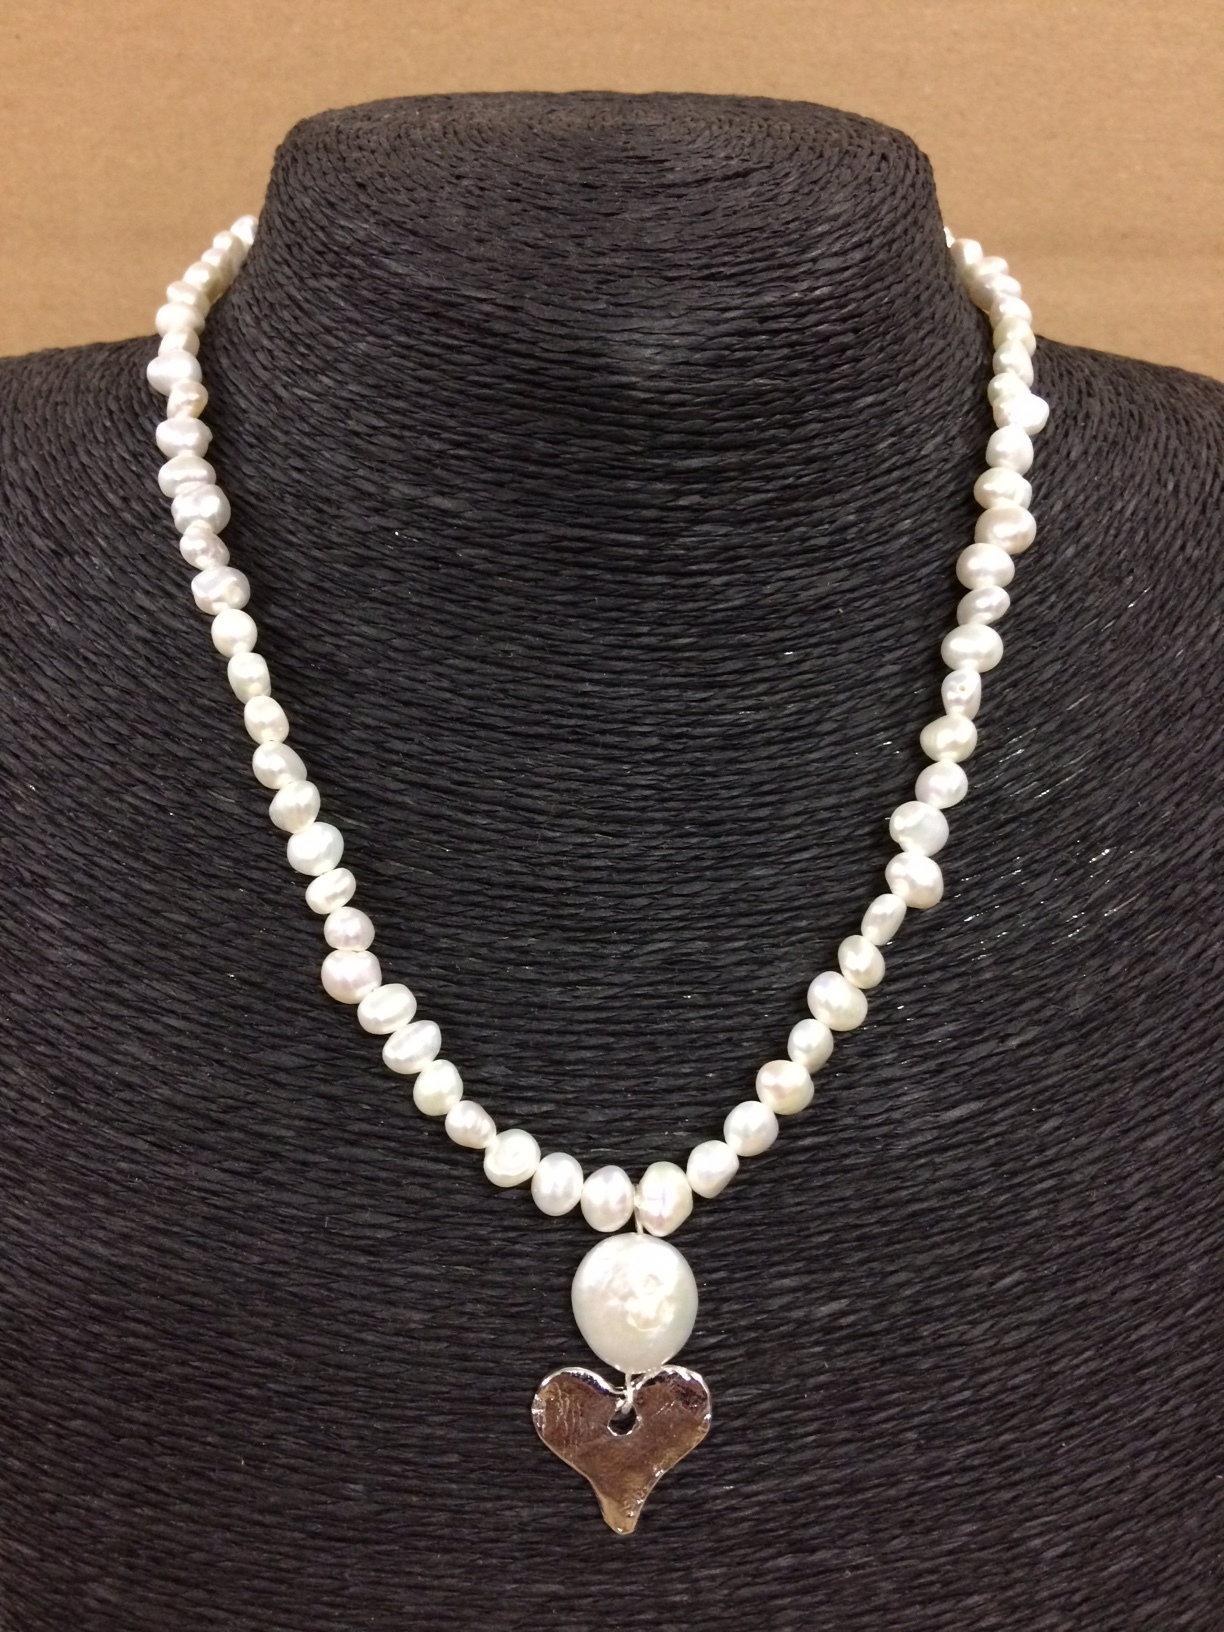 susan-shaw-necklace-pearls-with-silver-heart